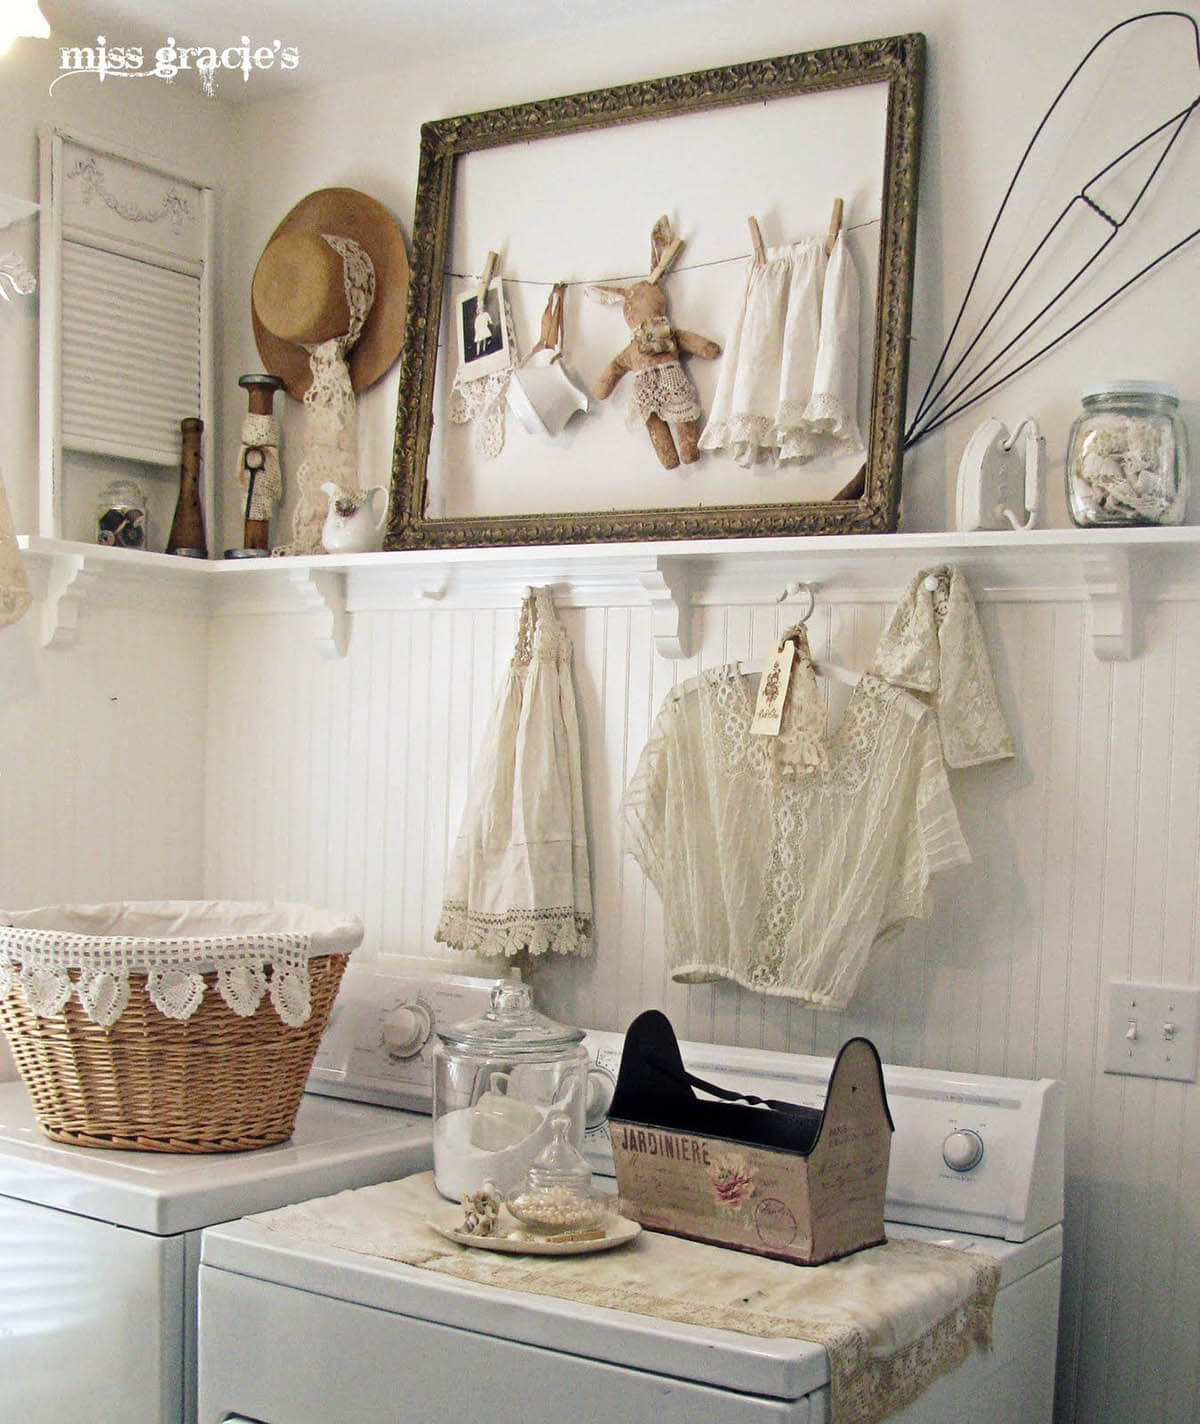 Best ideas about Laundry Room Decor Ideas . Save or Pin 25 Best Vintage Laundry Room Decor Ideas and Designs for 2019 Now.